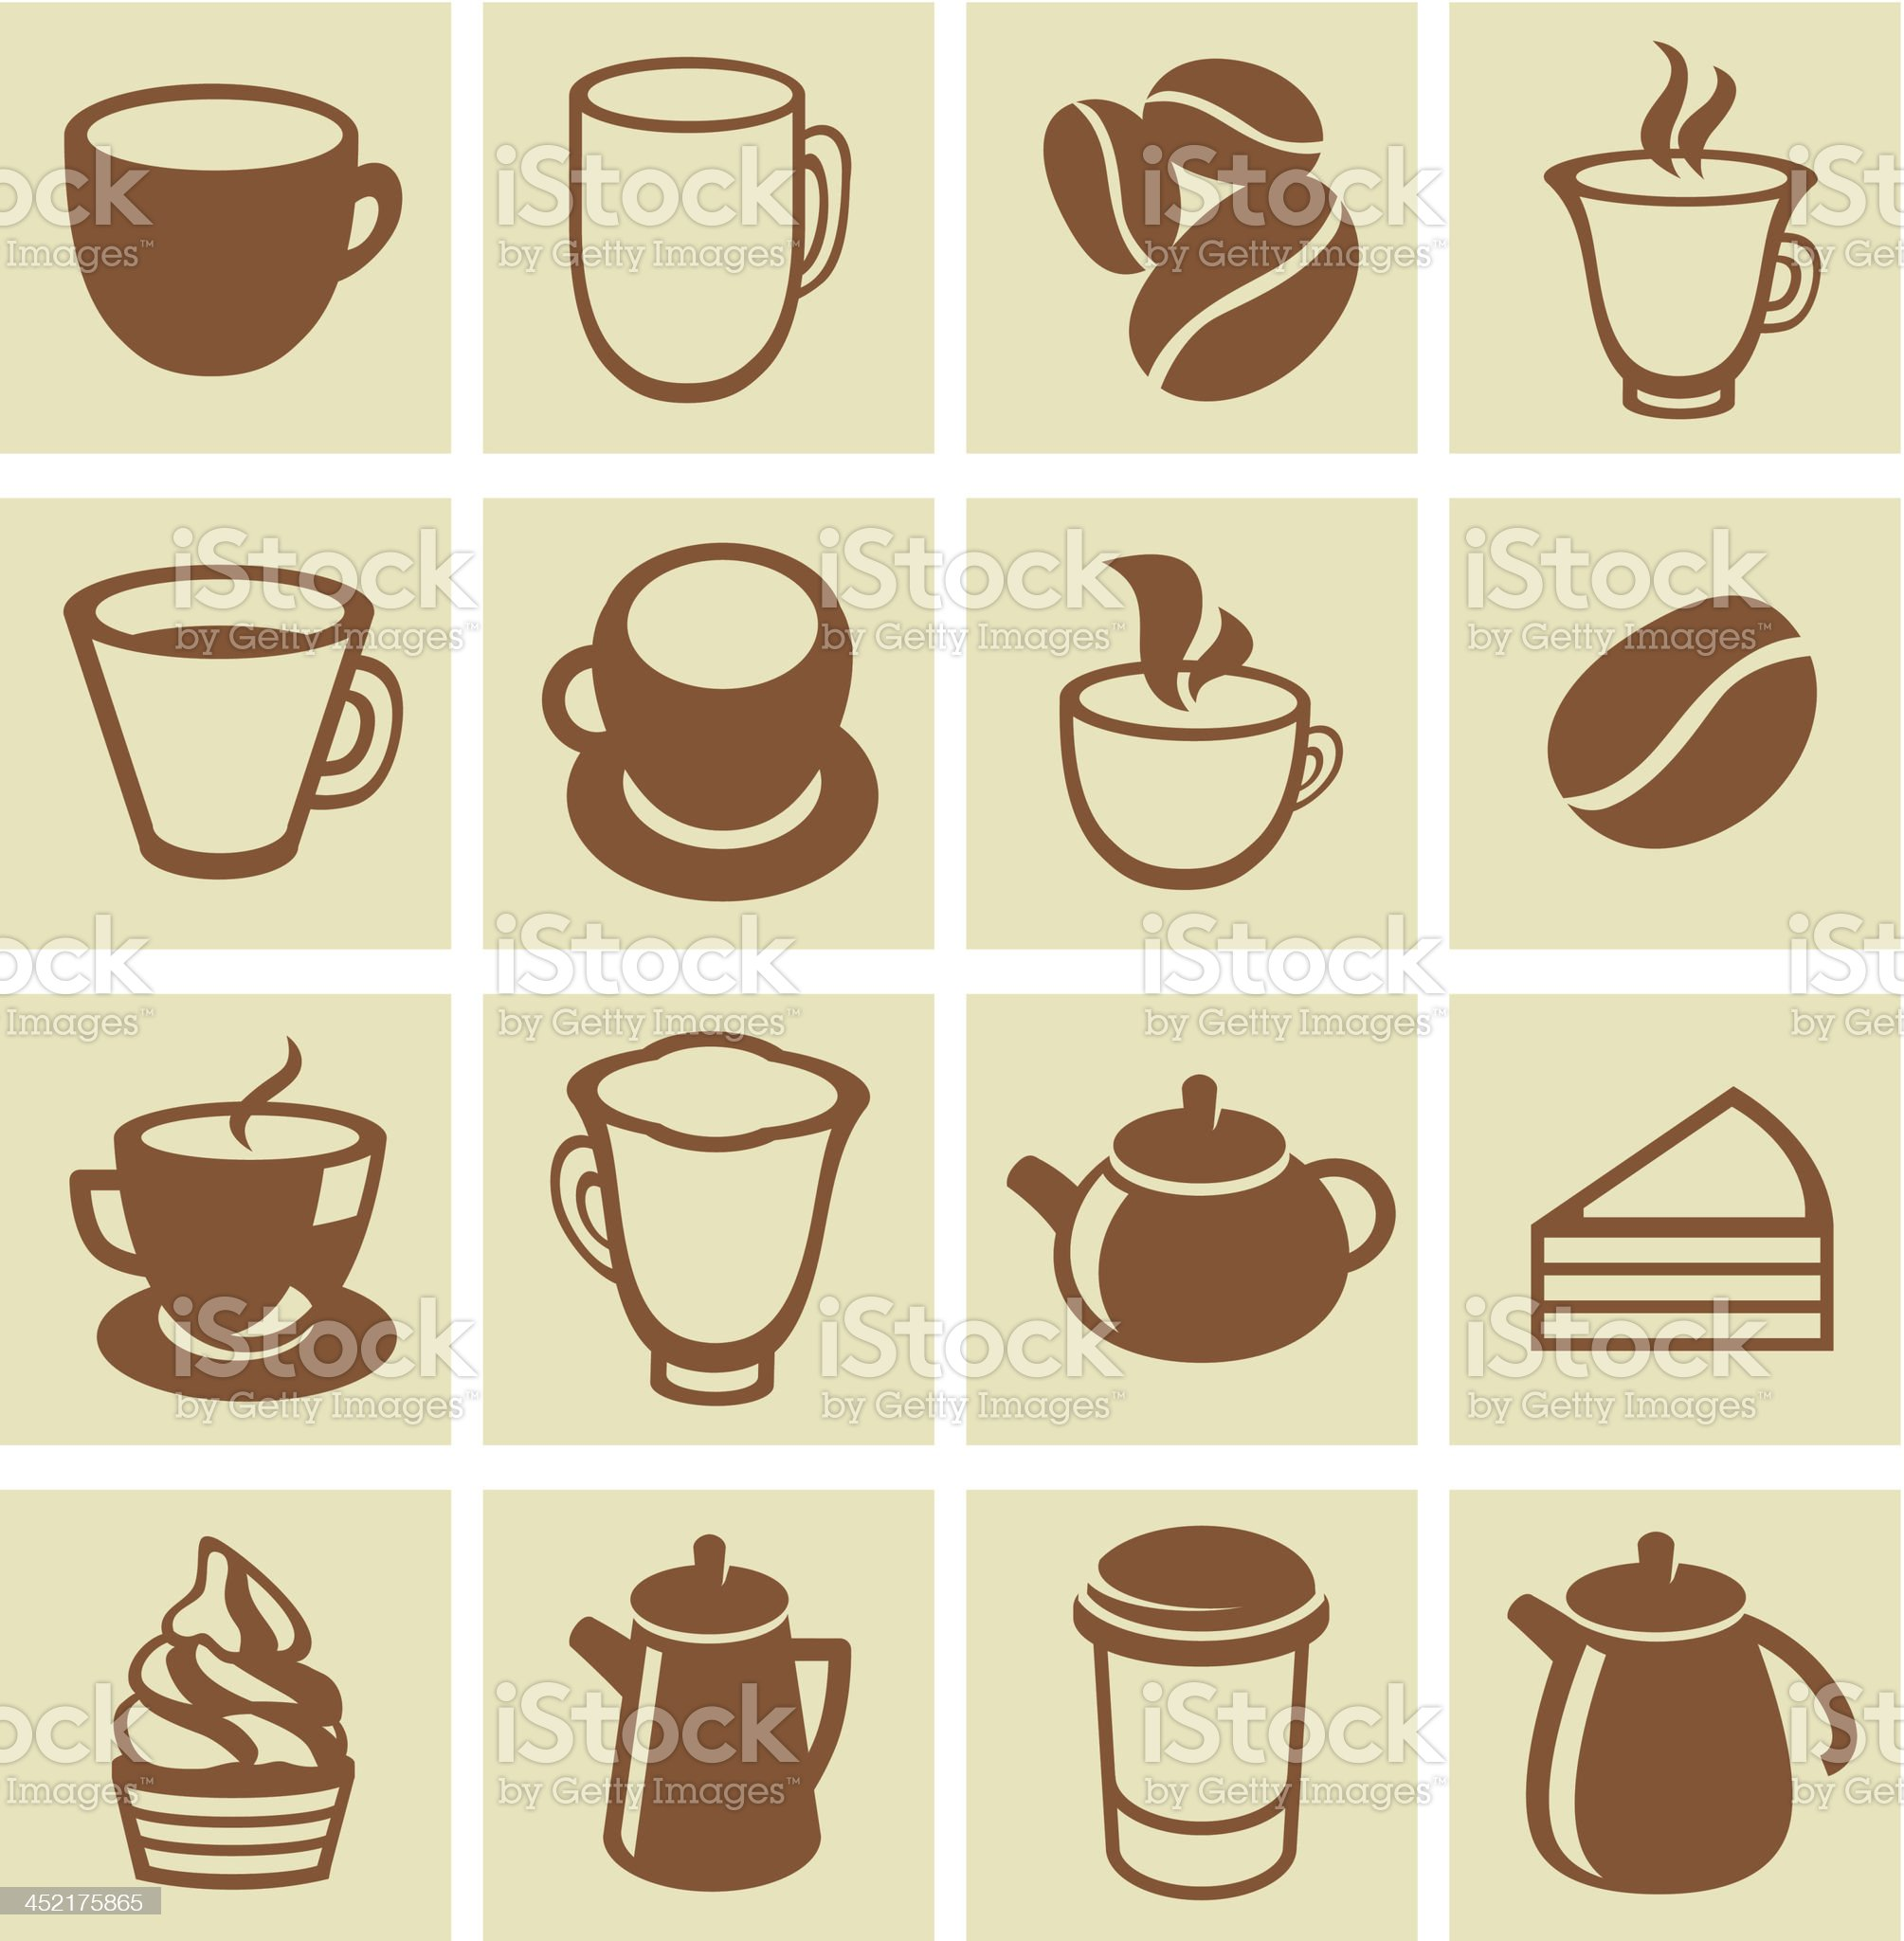 Vector set of coffee and tea icons royalty-free stock vector art